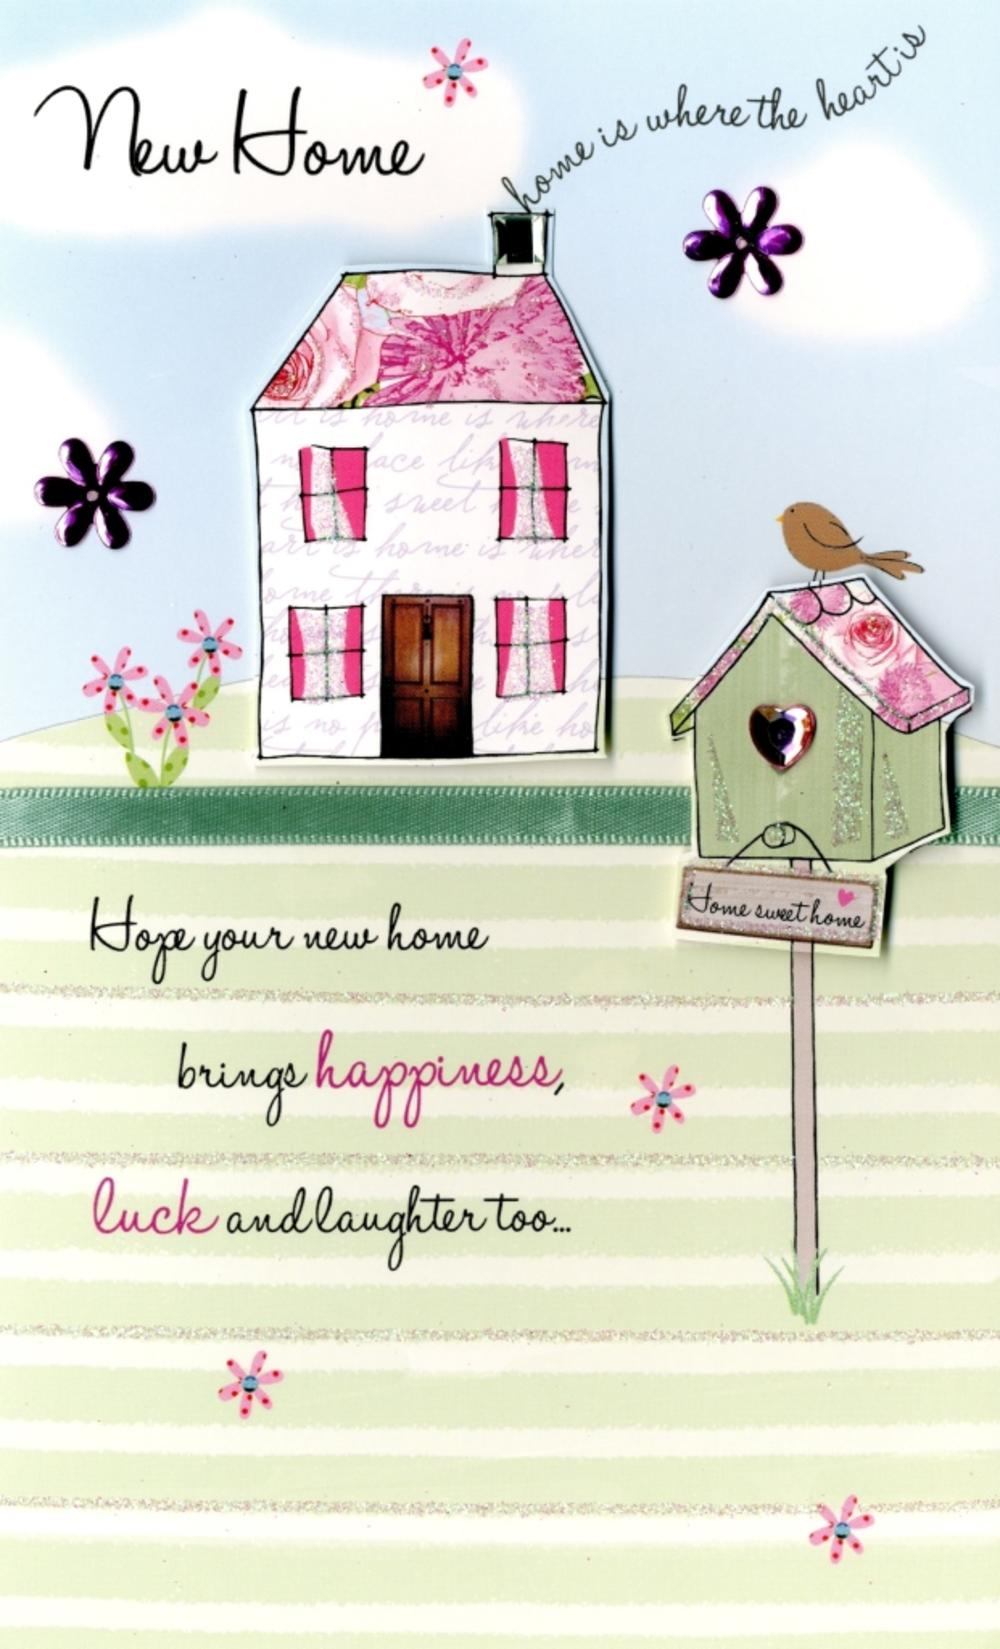 New Home Embellished Greeting Card | Cards | Love Kates